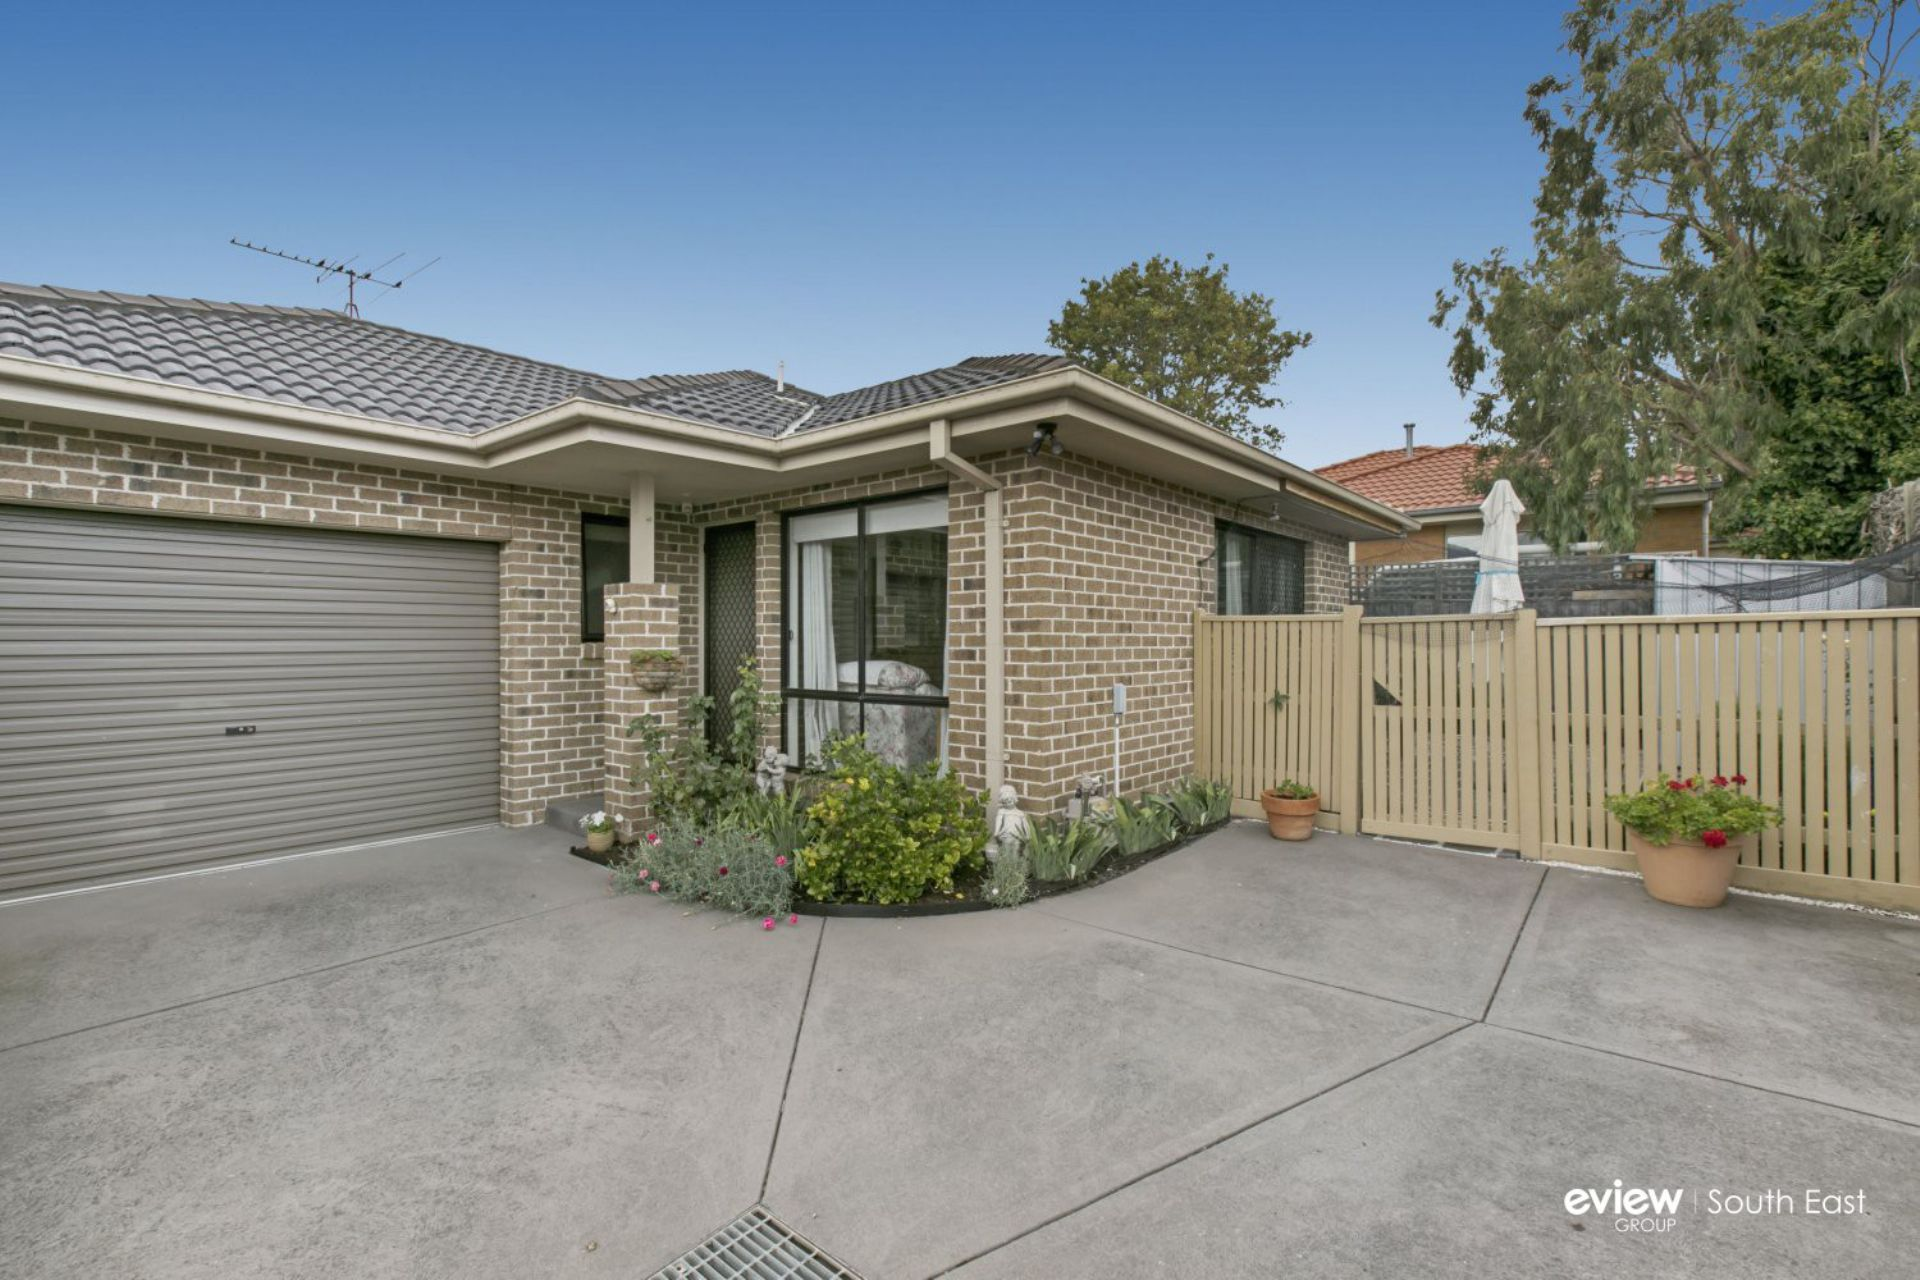 6/6 Reservoir Road, FRANKSTON, VIC, 3199 - Image